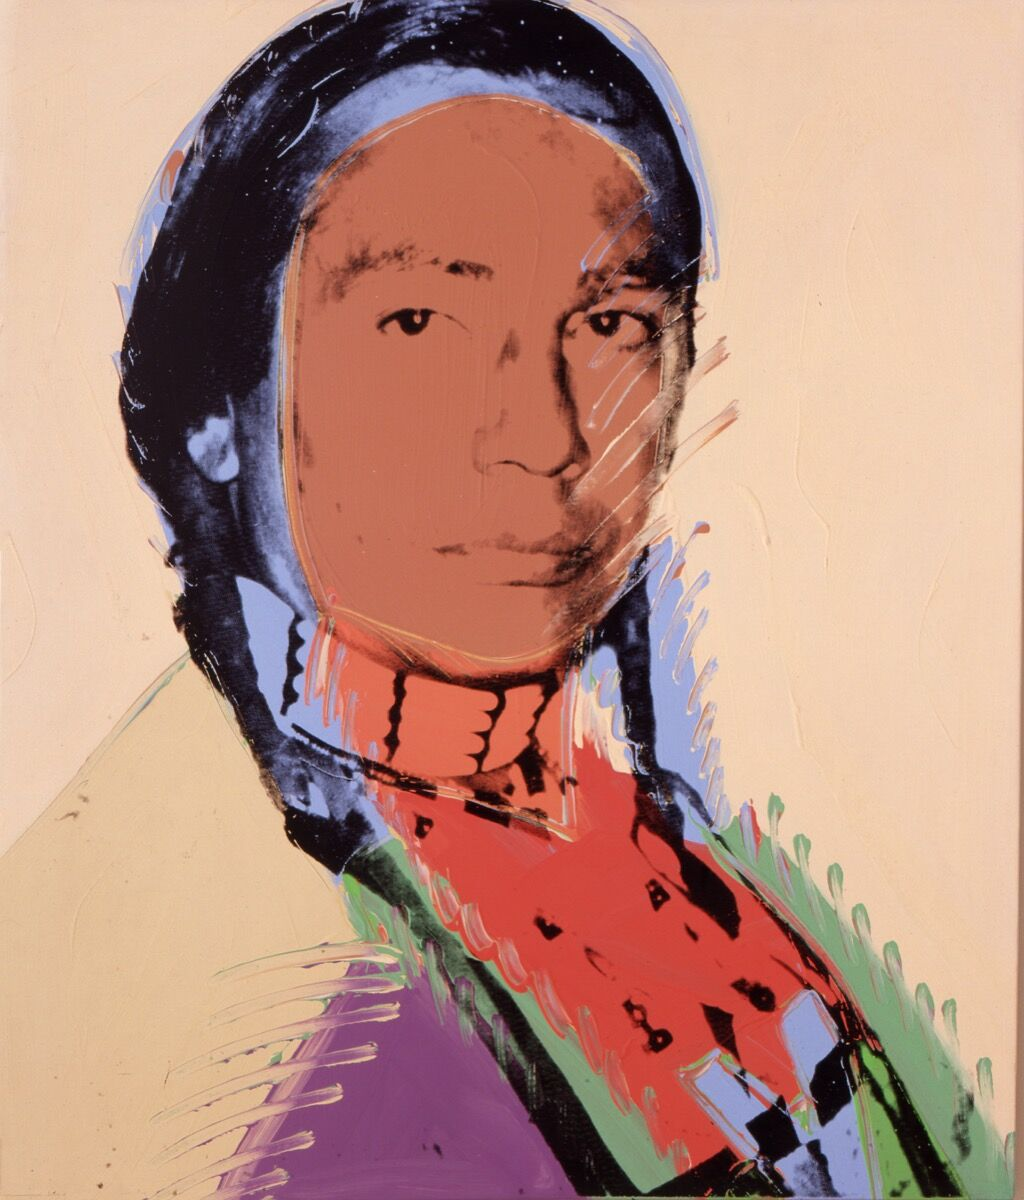 Andy Warhol, The American Indian (Russell Means), 1976. Artwork © 2019 The Andy Warhol Foundation for the Visual Arts, Inc. / Licensed by Artists Rights Society (ARS), New York. Courtesy of the Booth Museum.